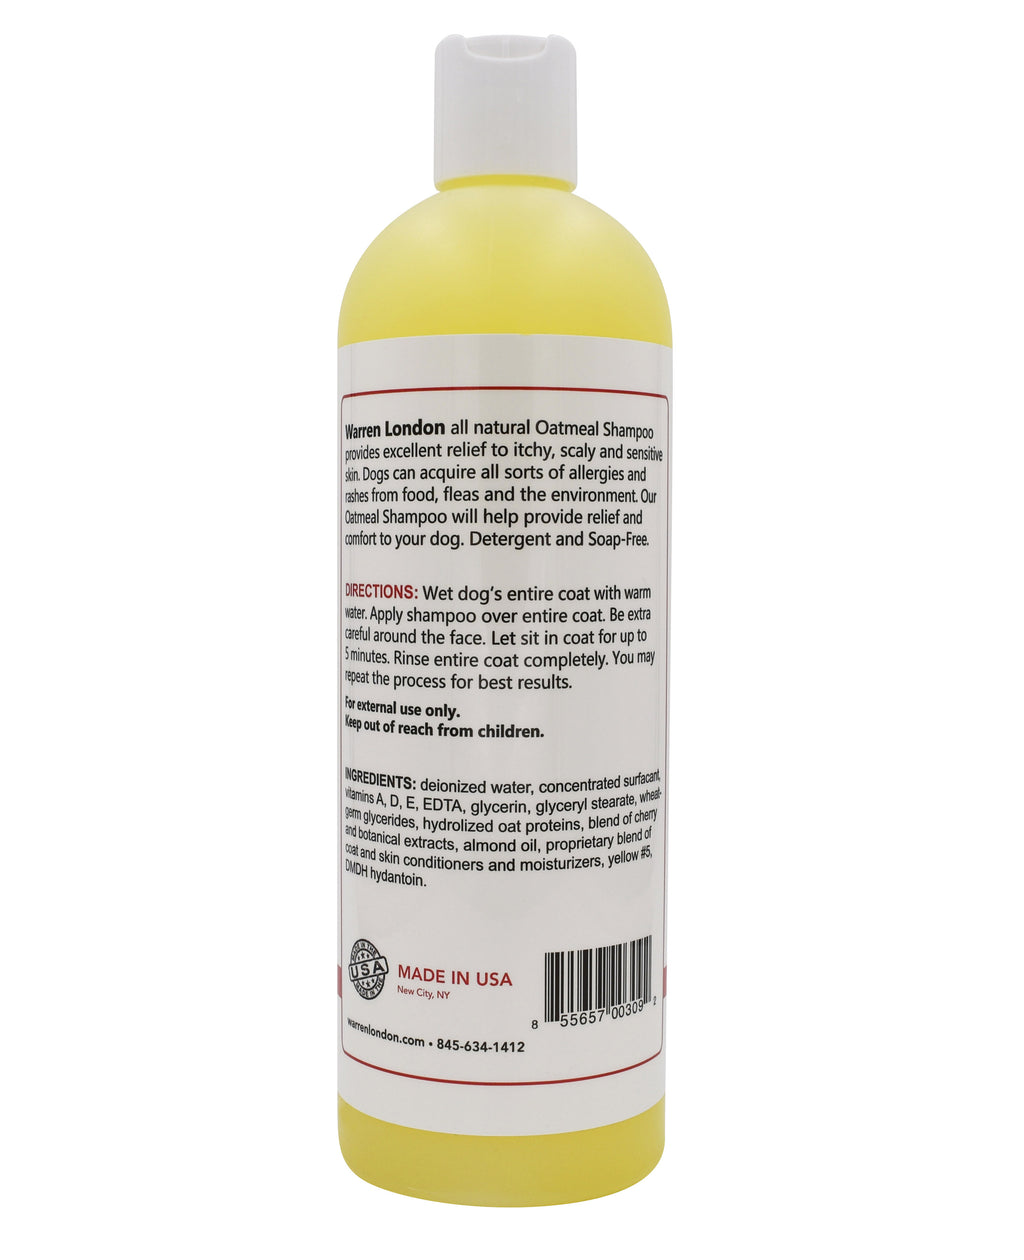 Warren London Oatmeal Shampoo for Itchy Skin & Coats